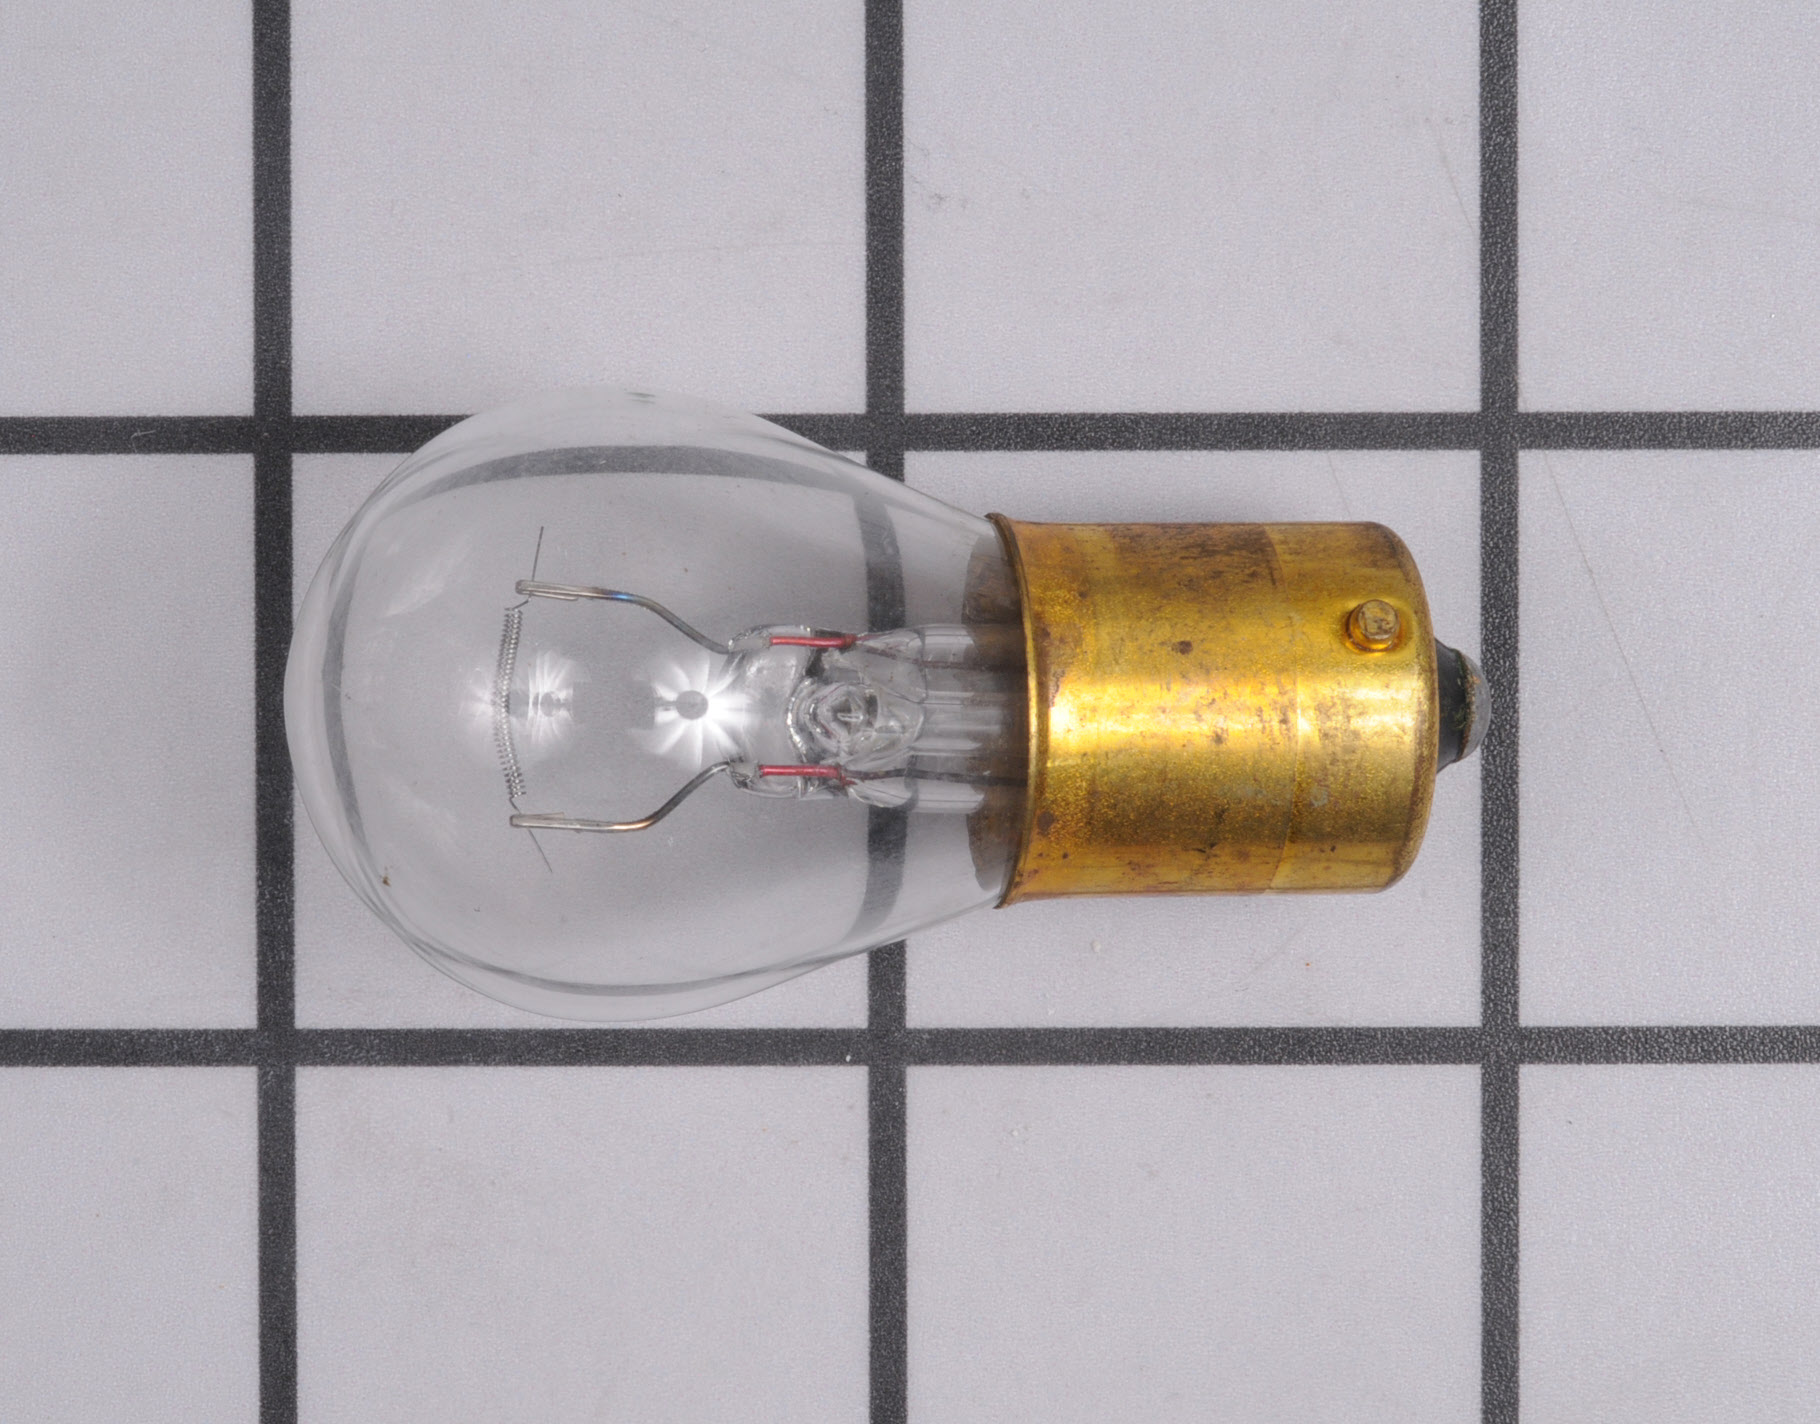 925-0963 Cub Cadet Snowblower Part -Light Bulb